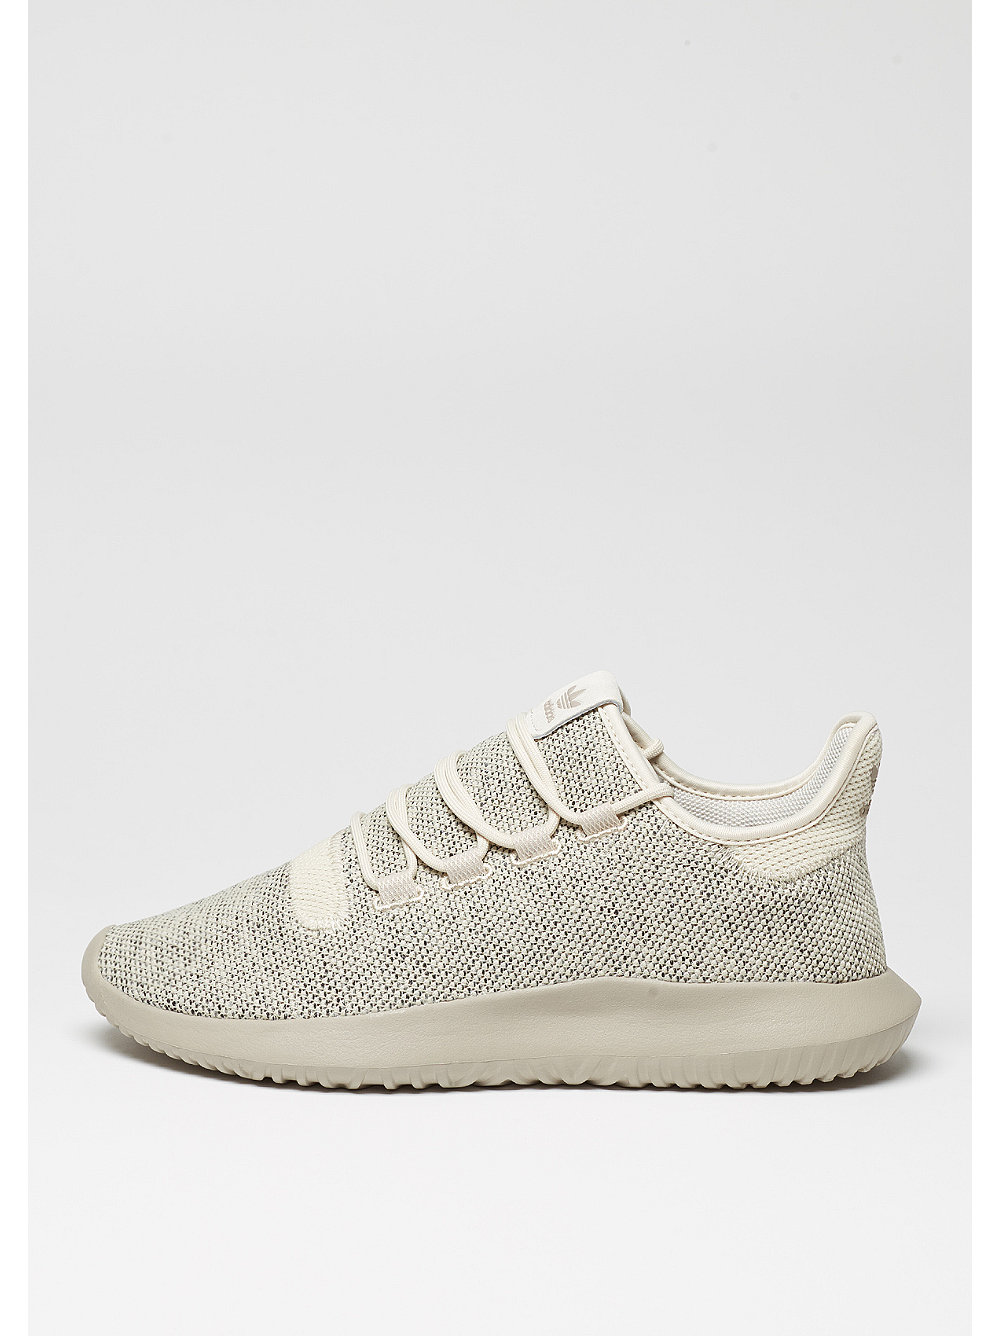 adidas Tubular Shadow 3D Knit light brown-clear brown-core black